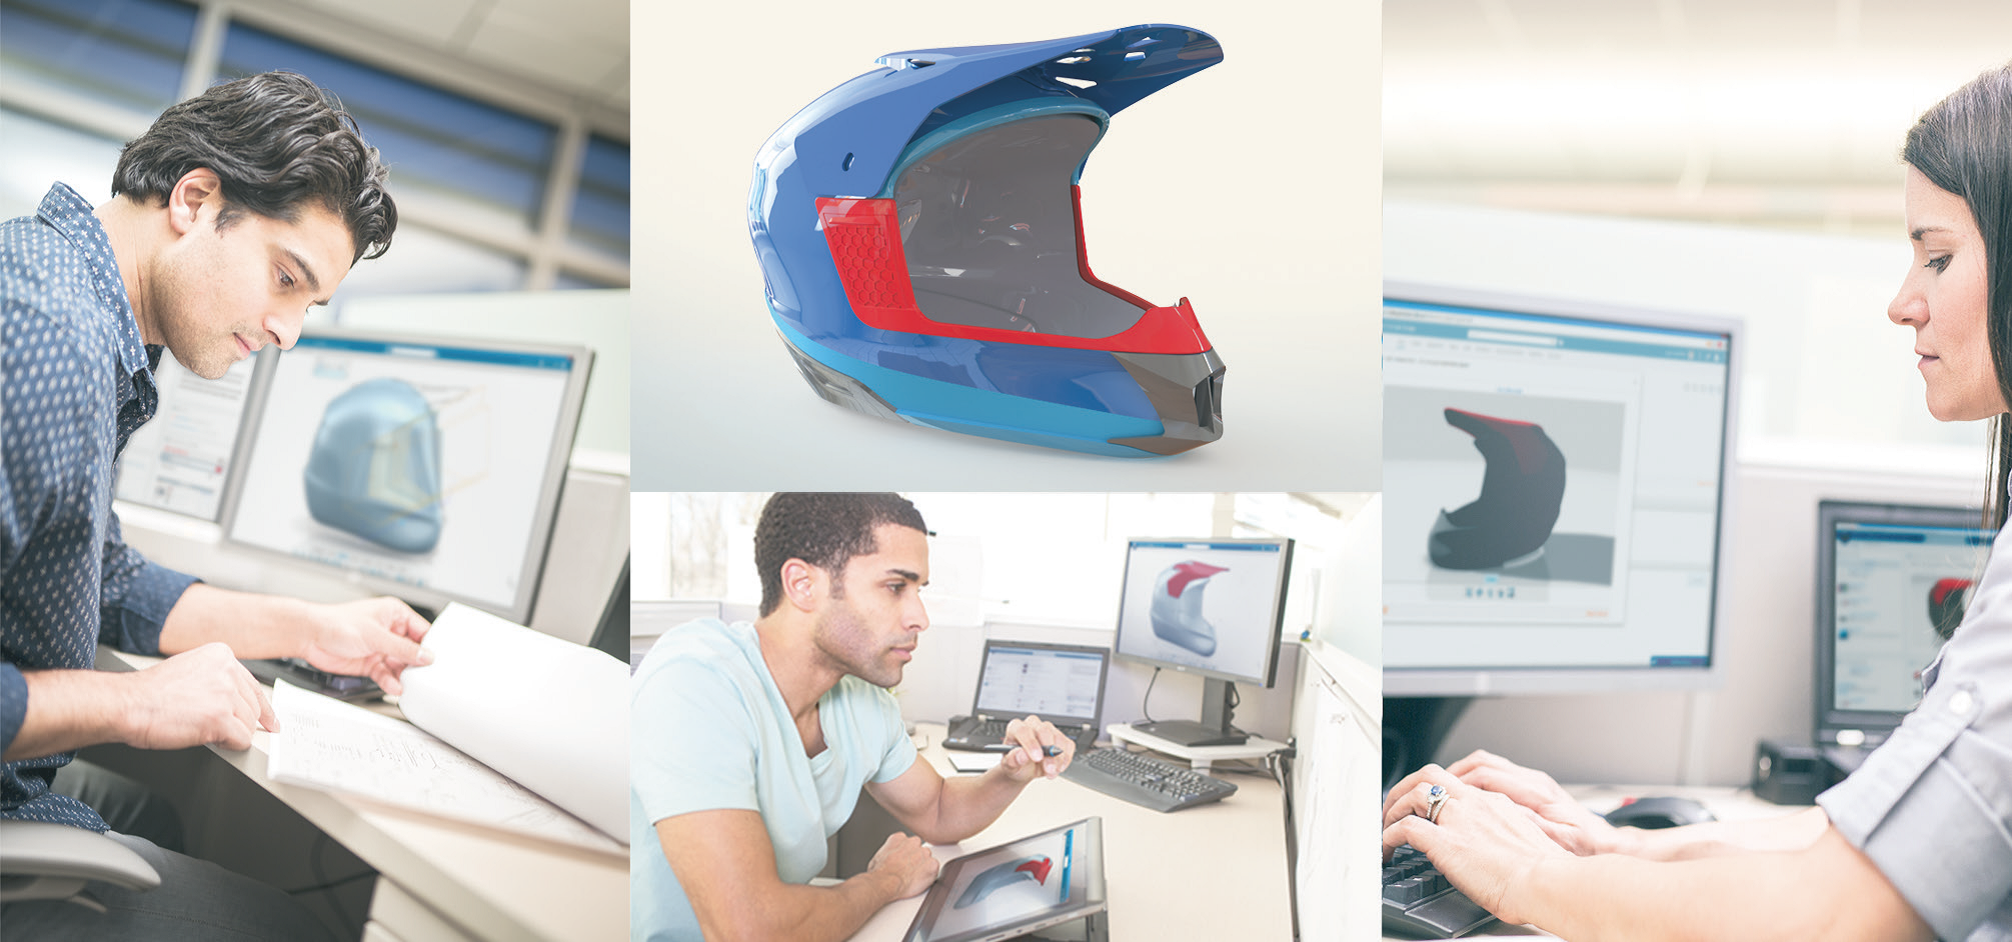 SOLIDWORKS Industrial Design: Simplify industrial design and expand innovation for your business advantage